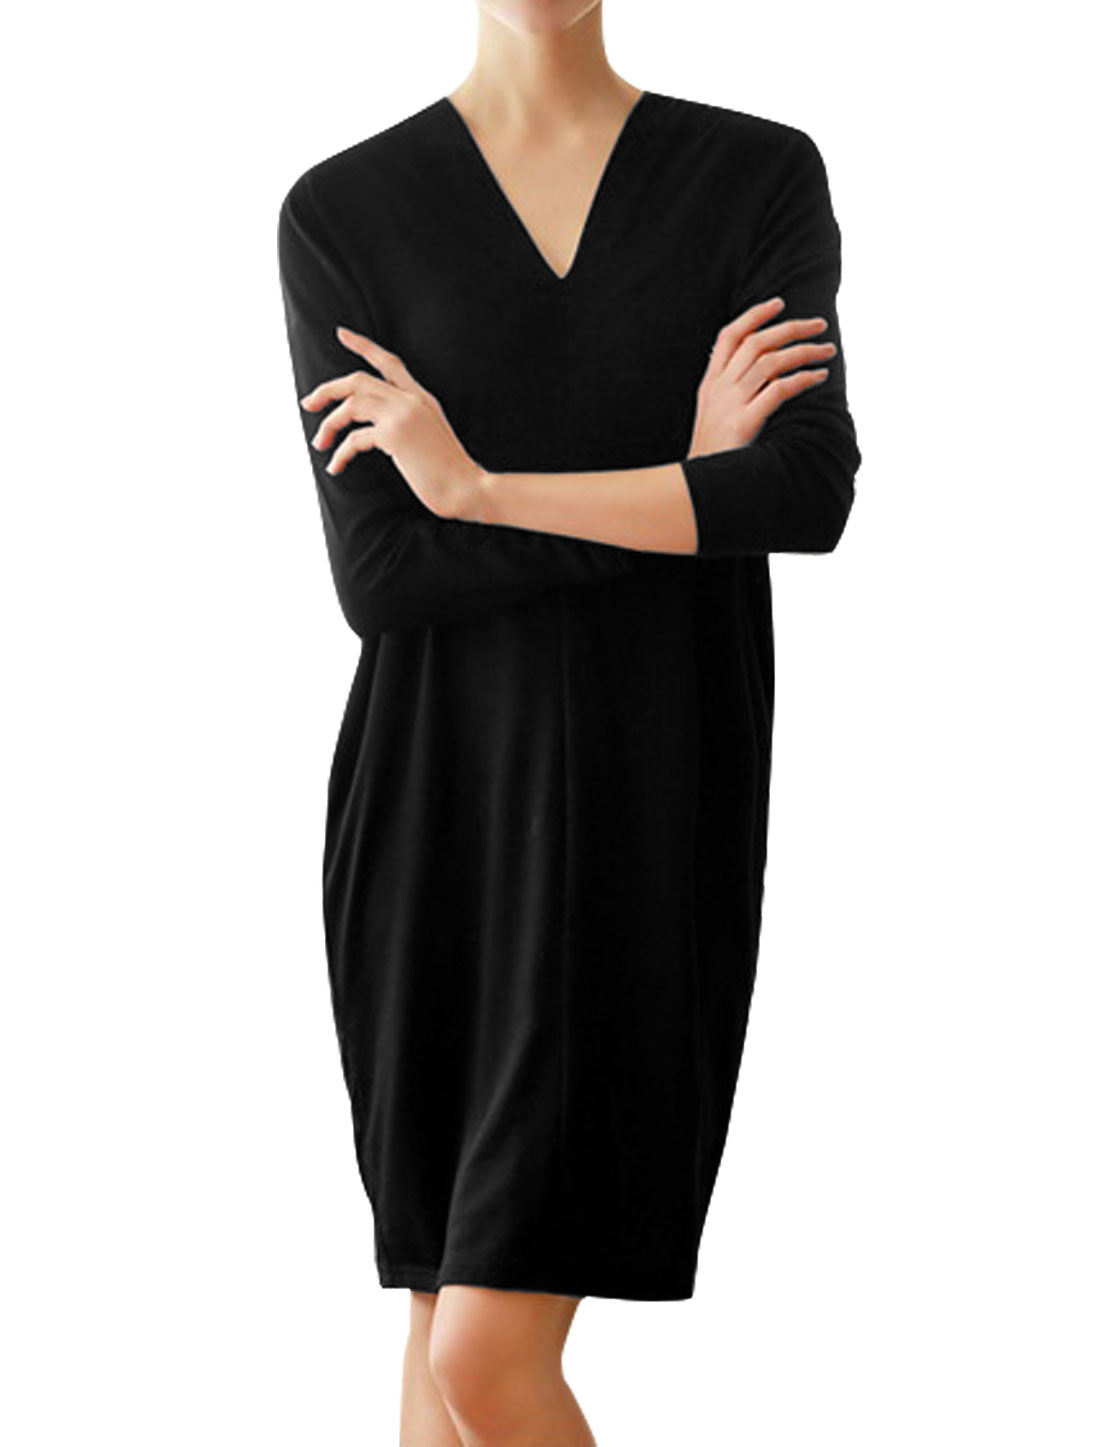 Women V Neck Dolman Sleeves Drop Shoulder Straight Tunic Dress Black XS